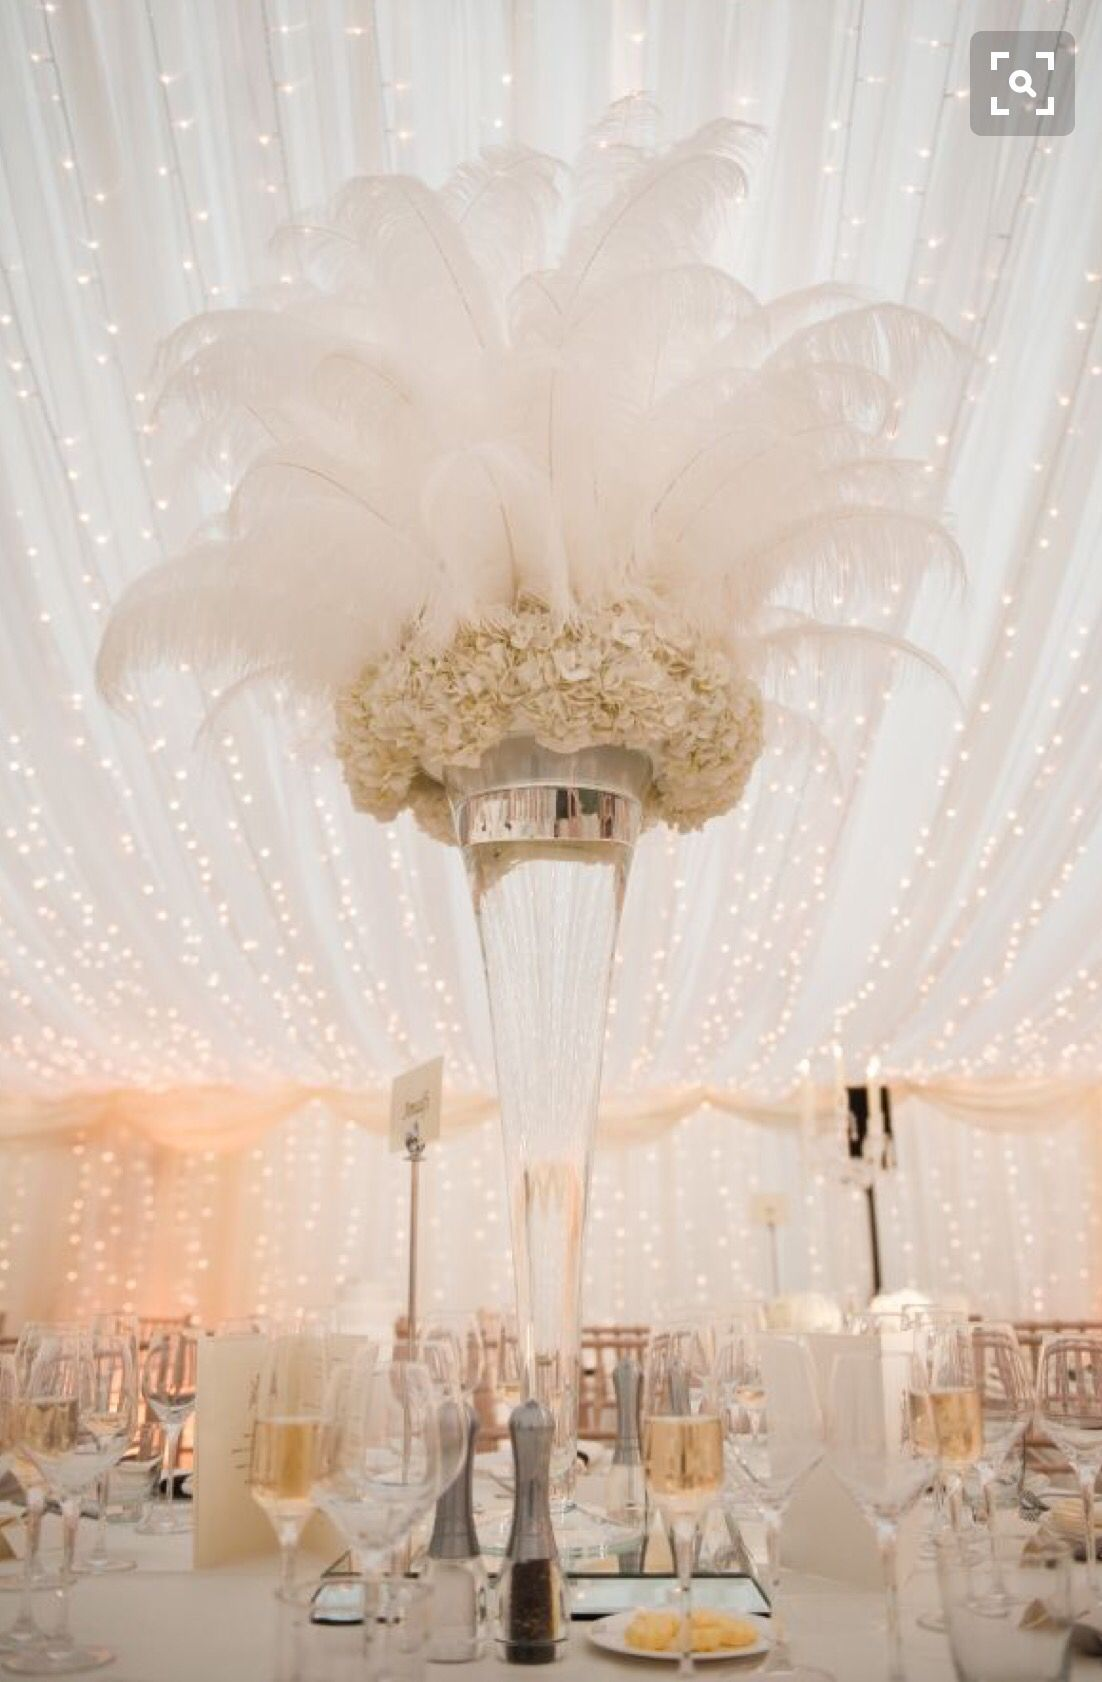 1920s wedding decoration ideas   glamorous Great Gatsby wedding decorations  Great Gatsby